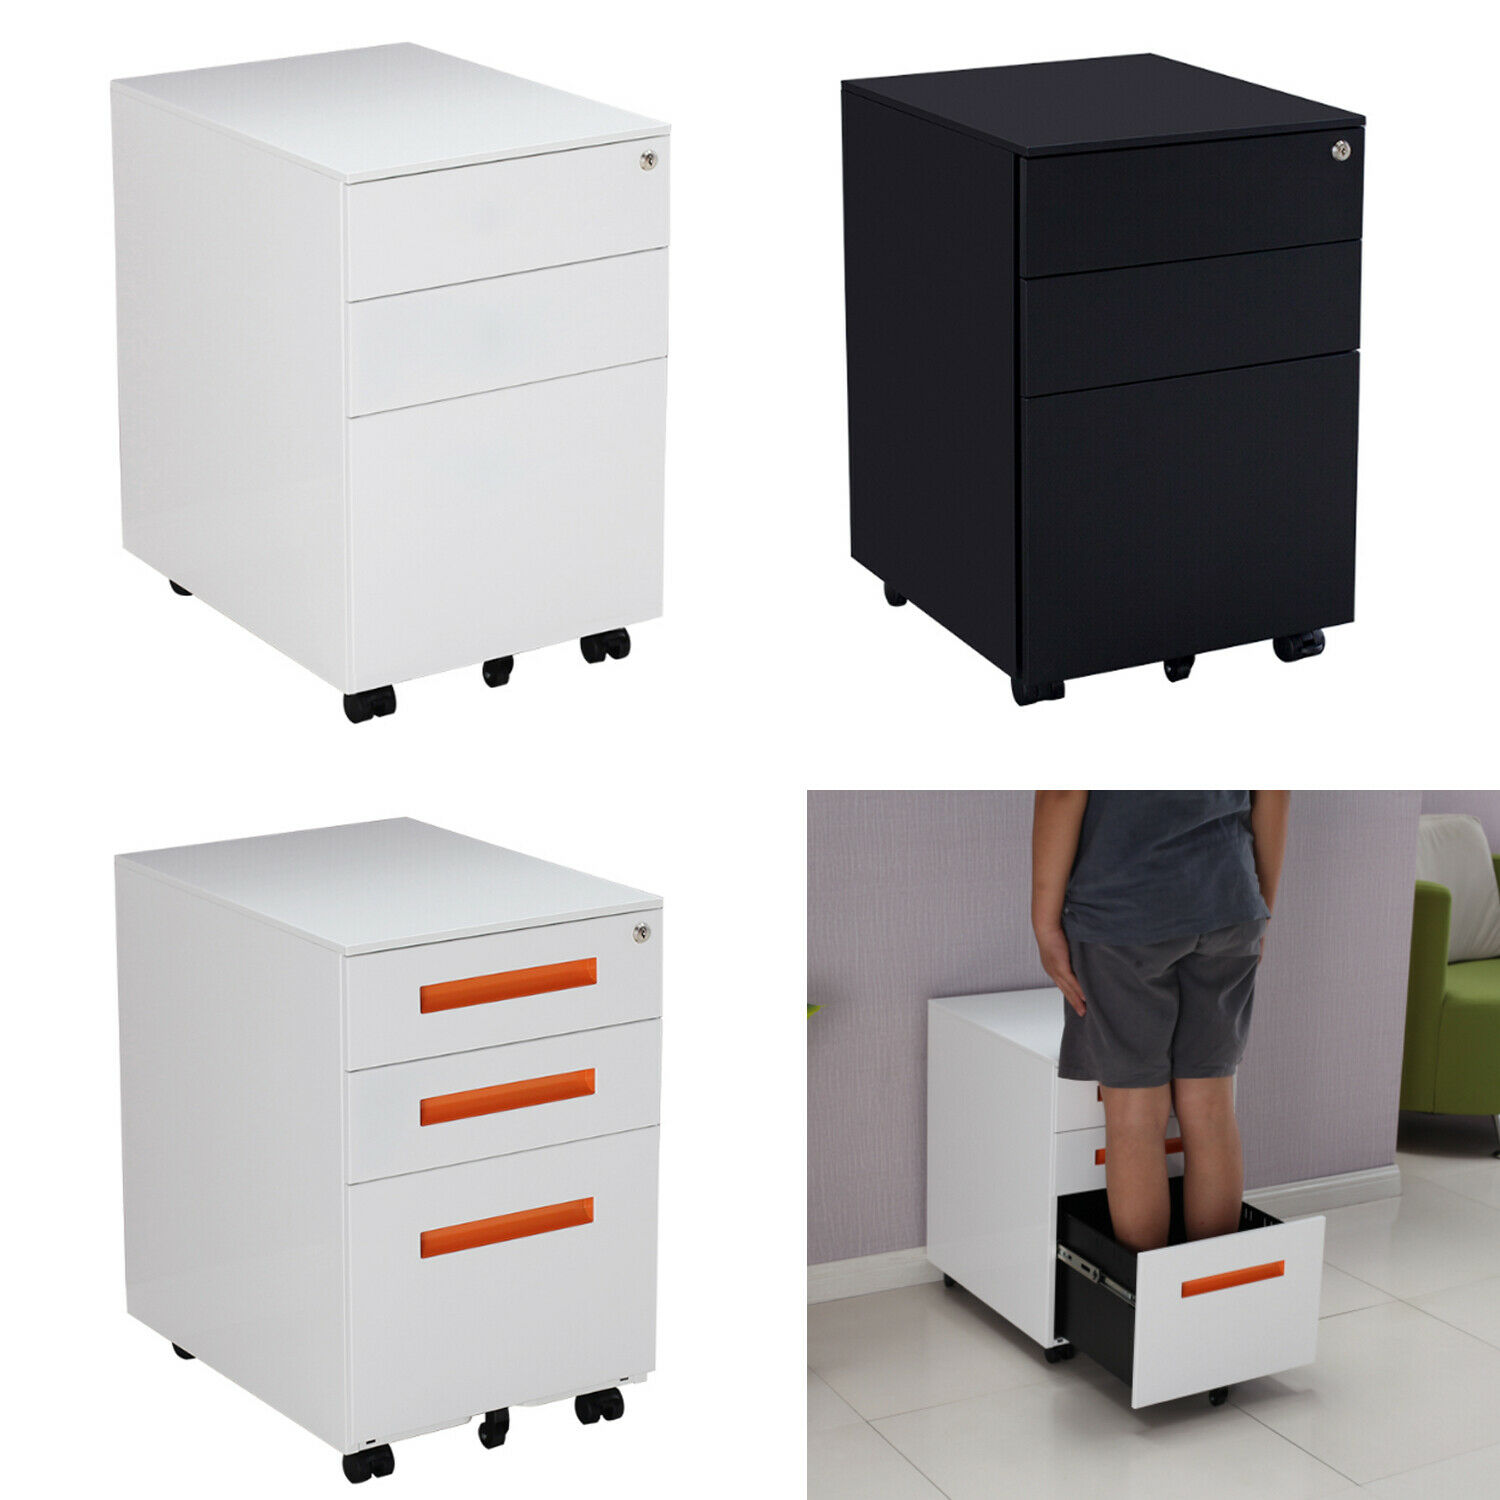 3 Pedestal Drawers Filing A4 Storage Lockable Casters Office Mobile File Cabinet